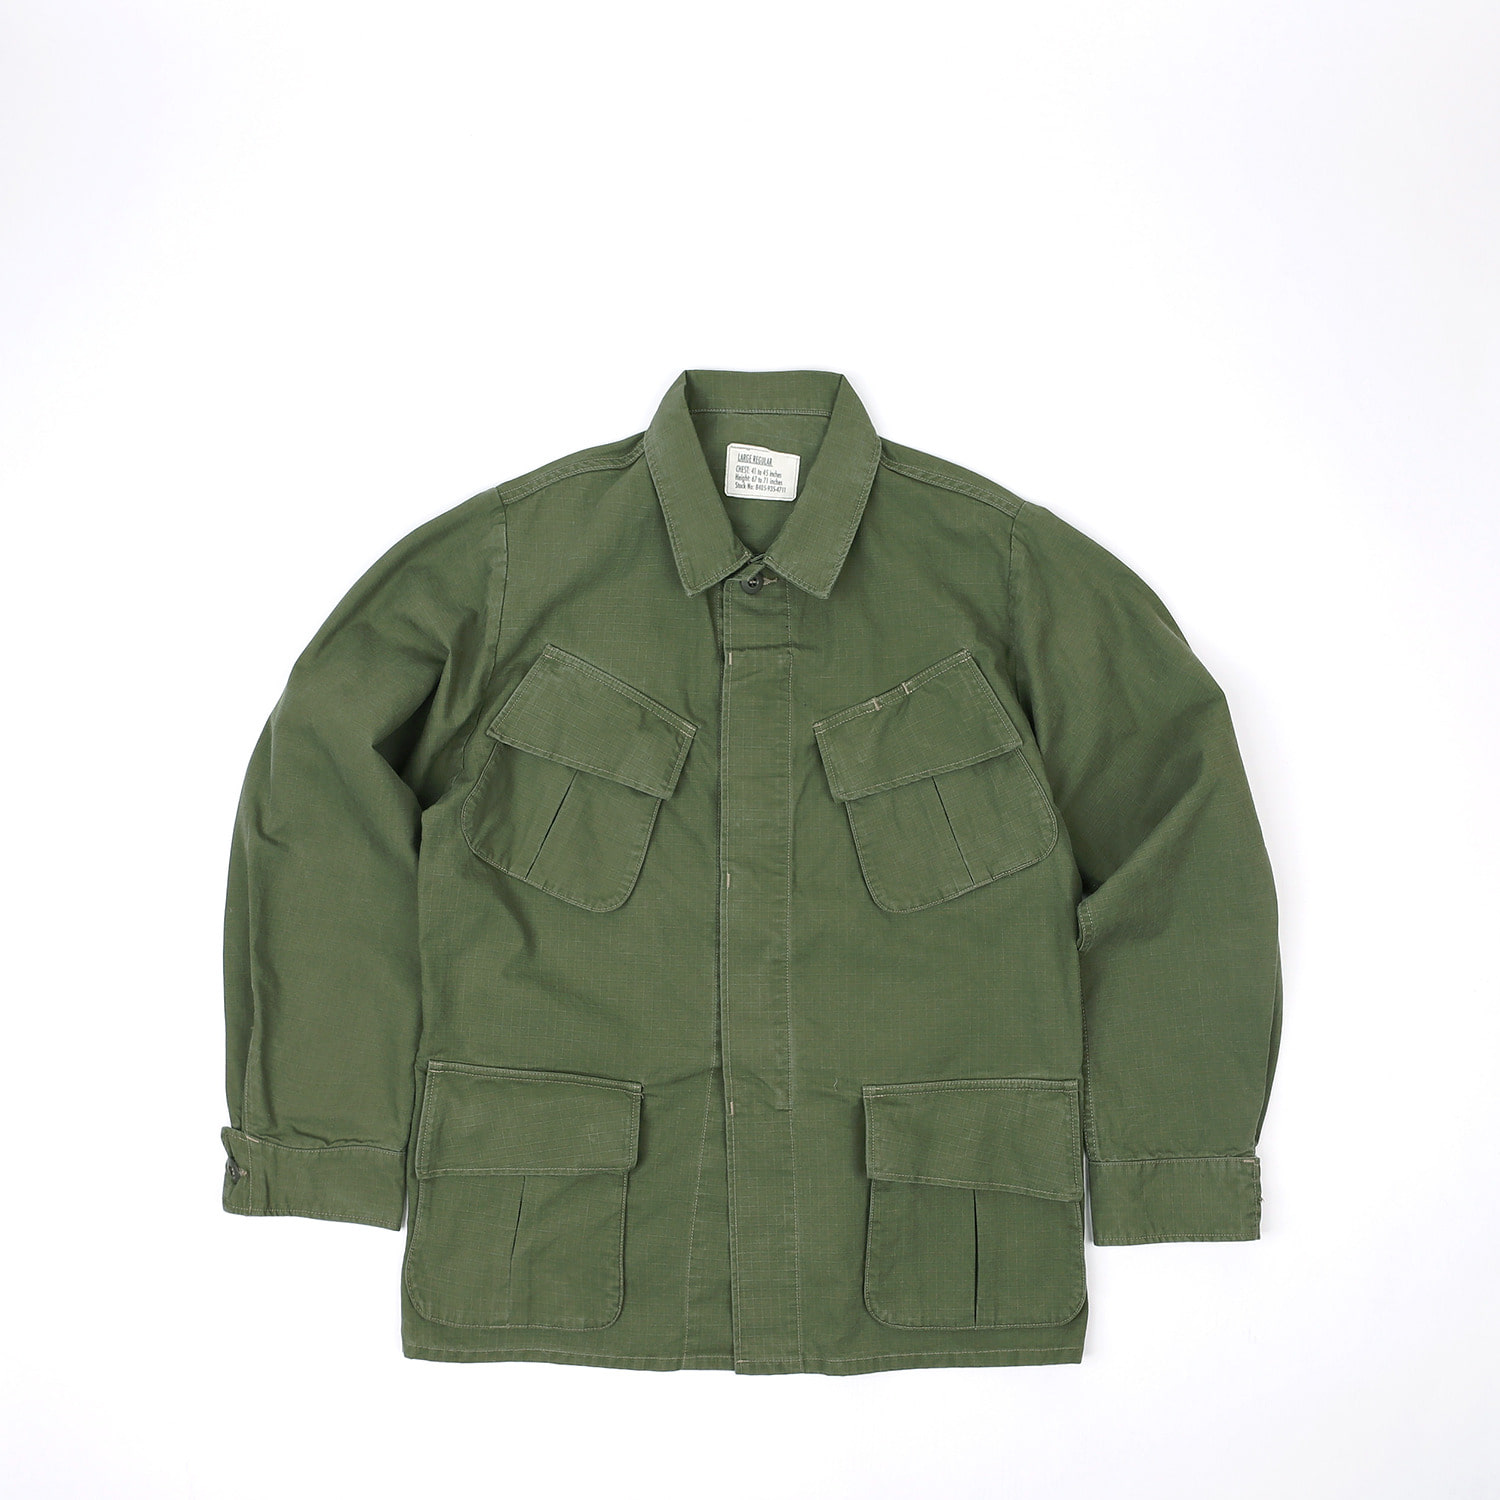 SOUTHERNMOST BUSH JACKET (Olive)